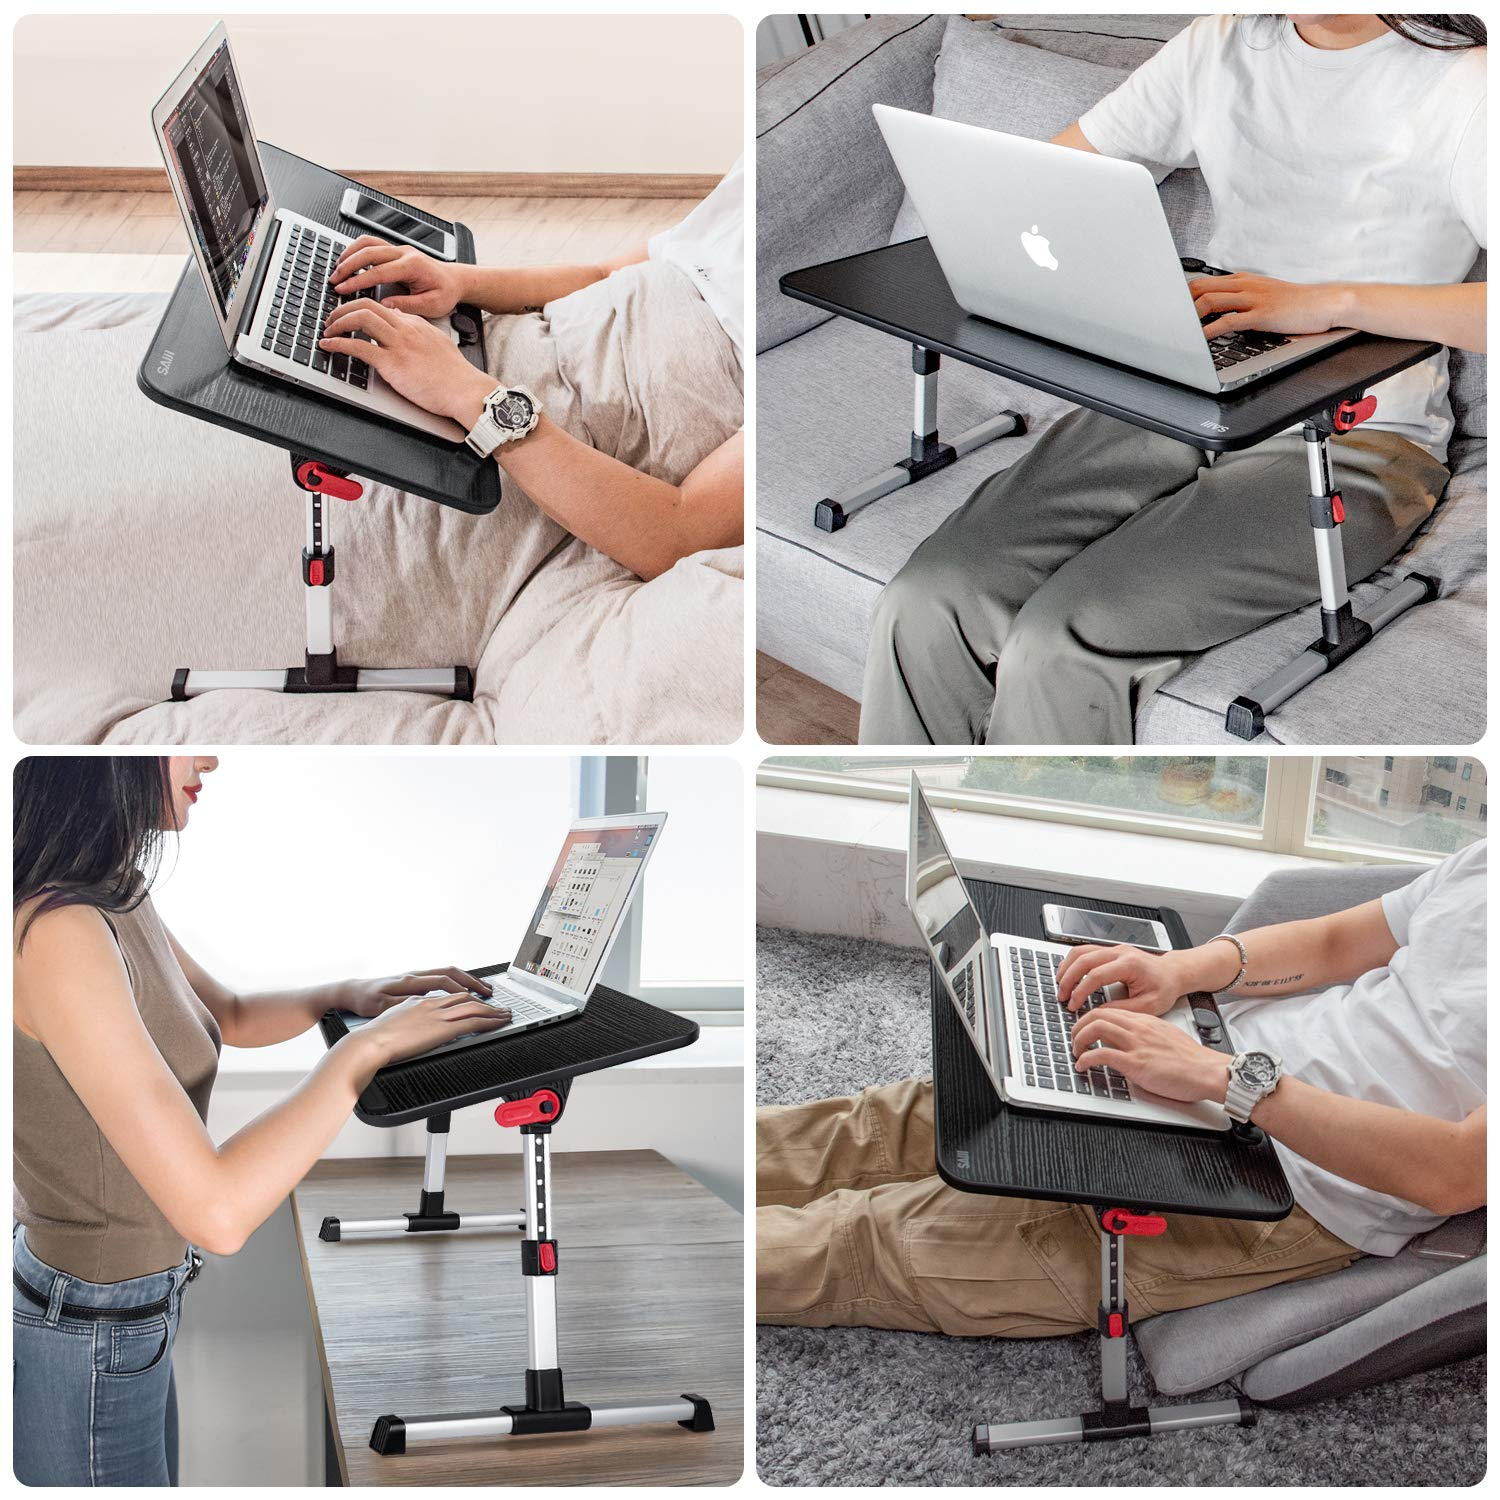 Laptop Bed Tray Table, SAIJI Adjustable Laptop Stand, Portable Lap Desks with Foldable Legs